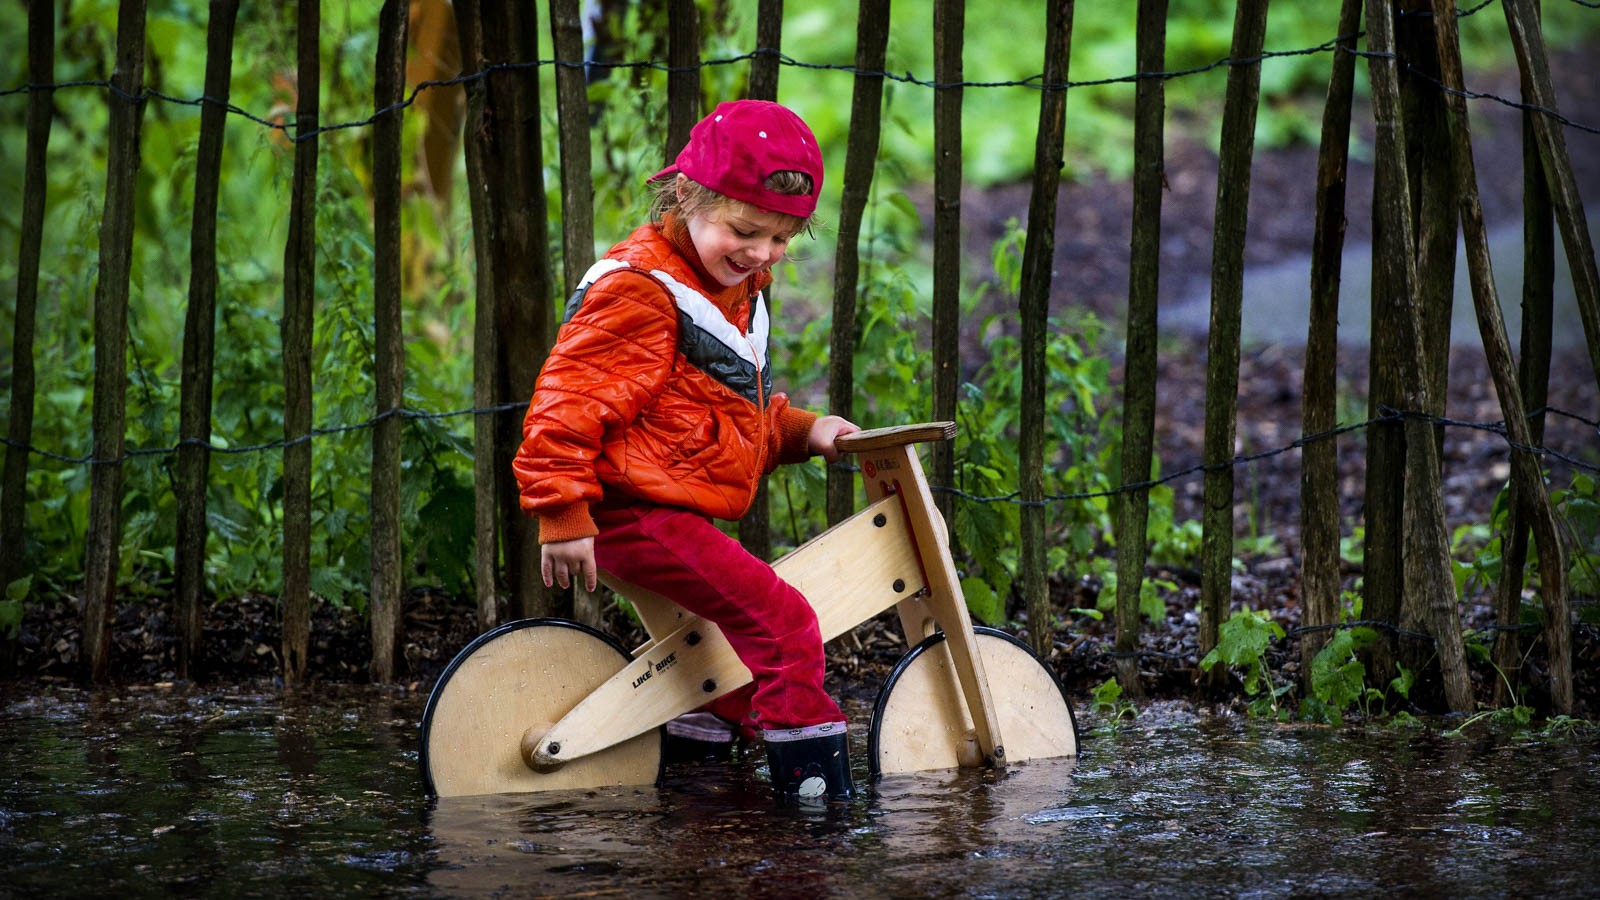 Playing outside in the rain, on a bike – what kids were meant to be doing